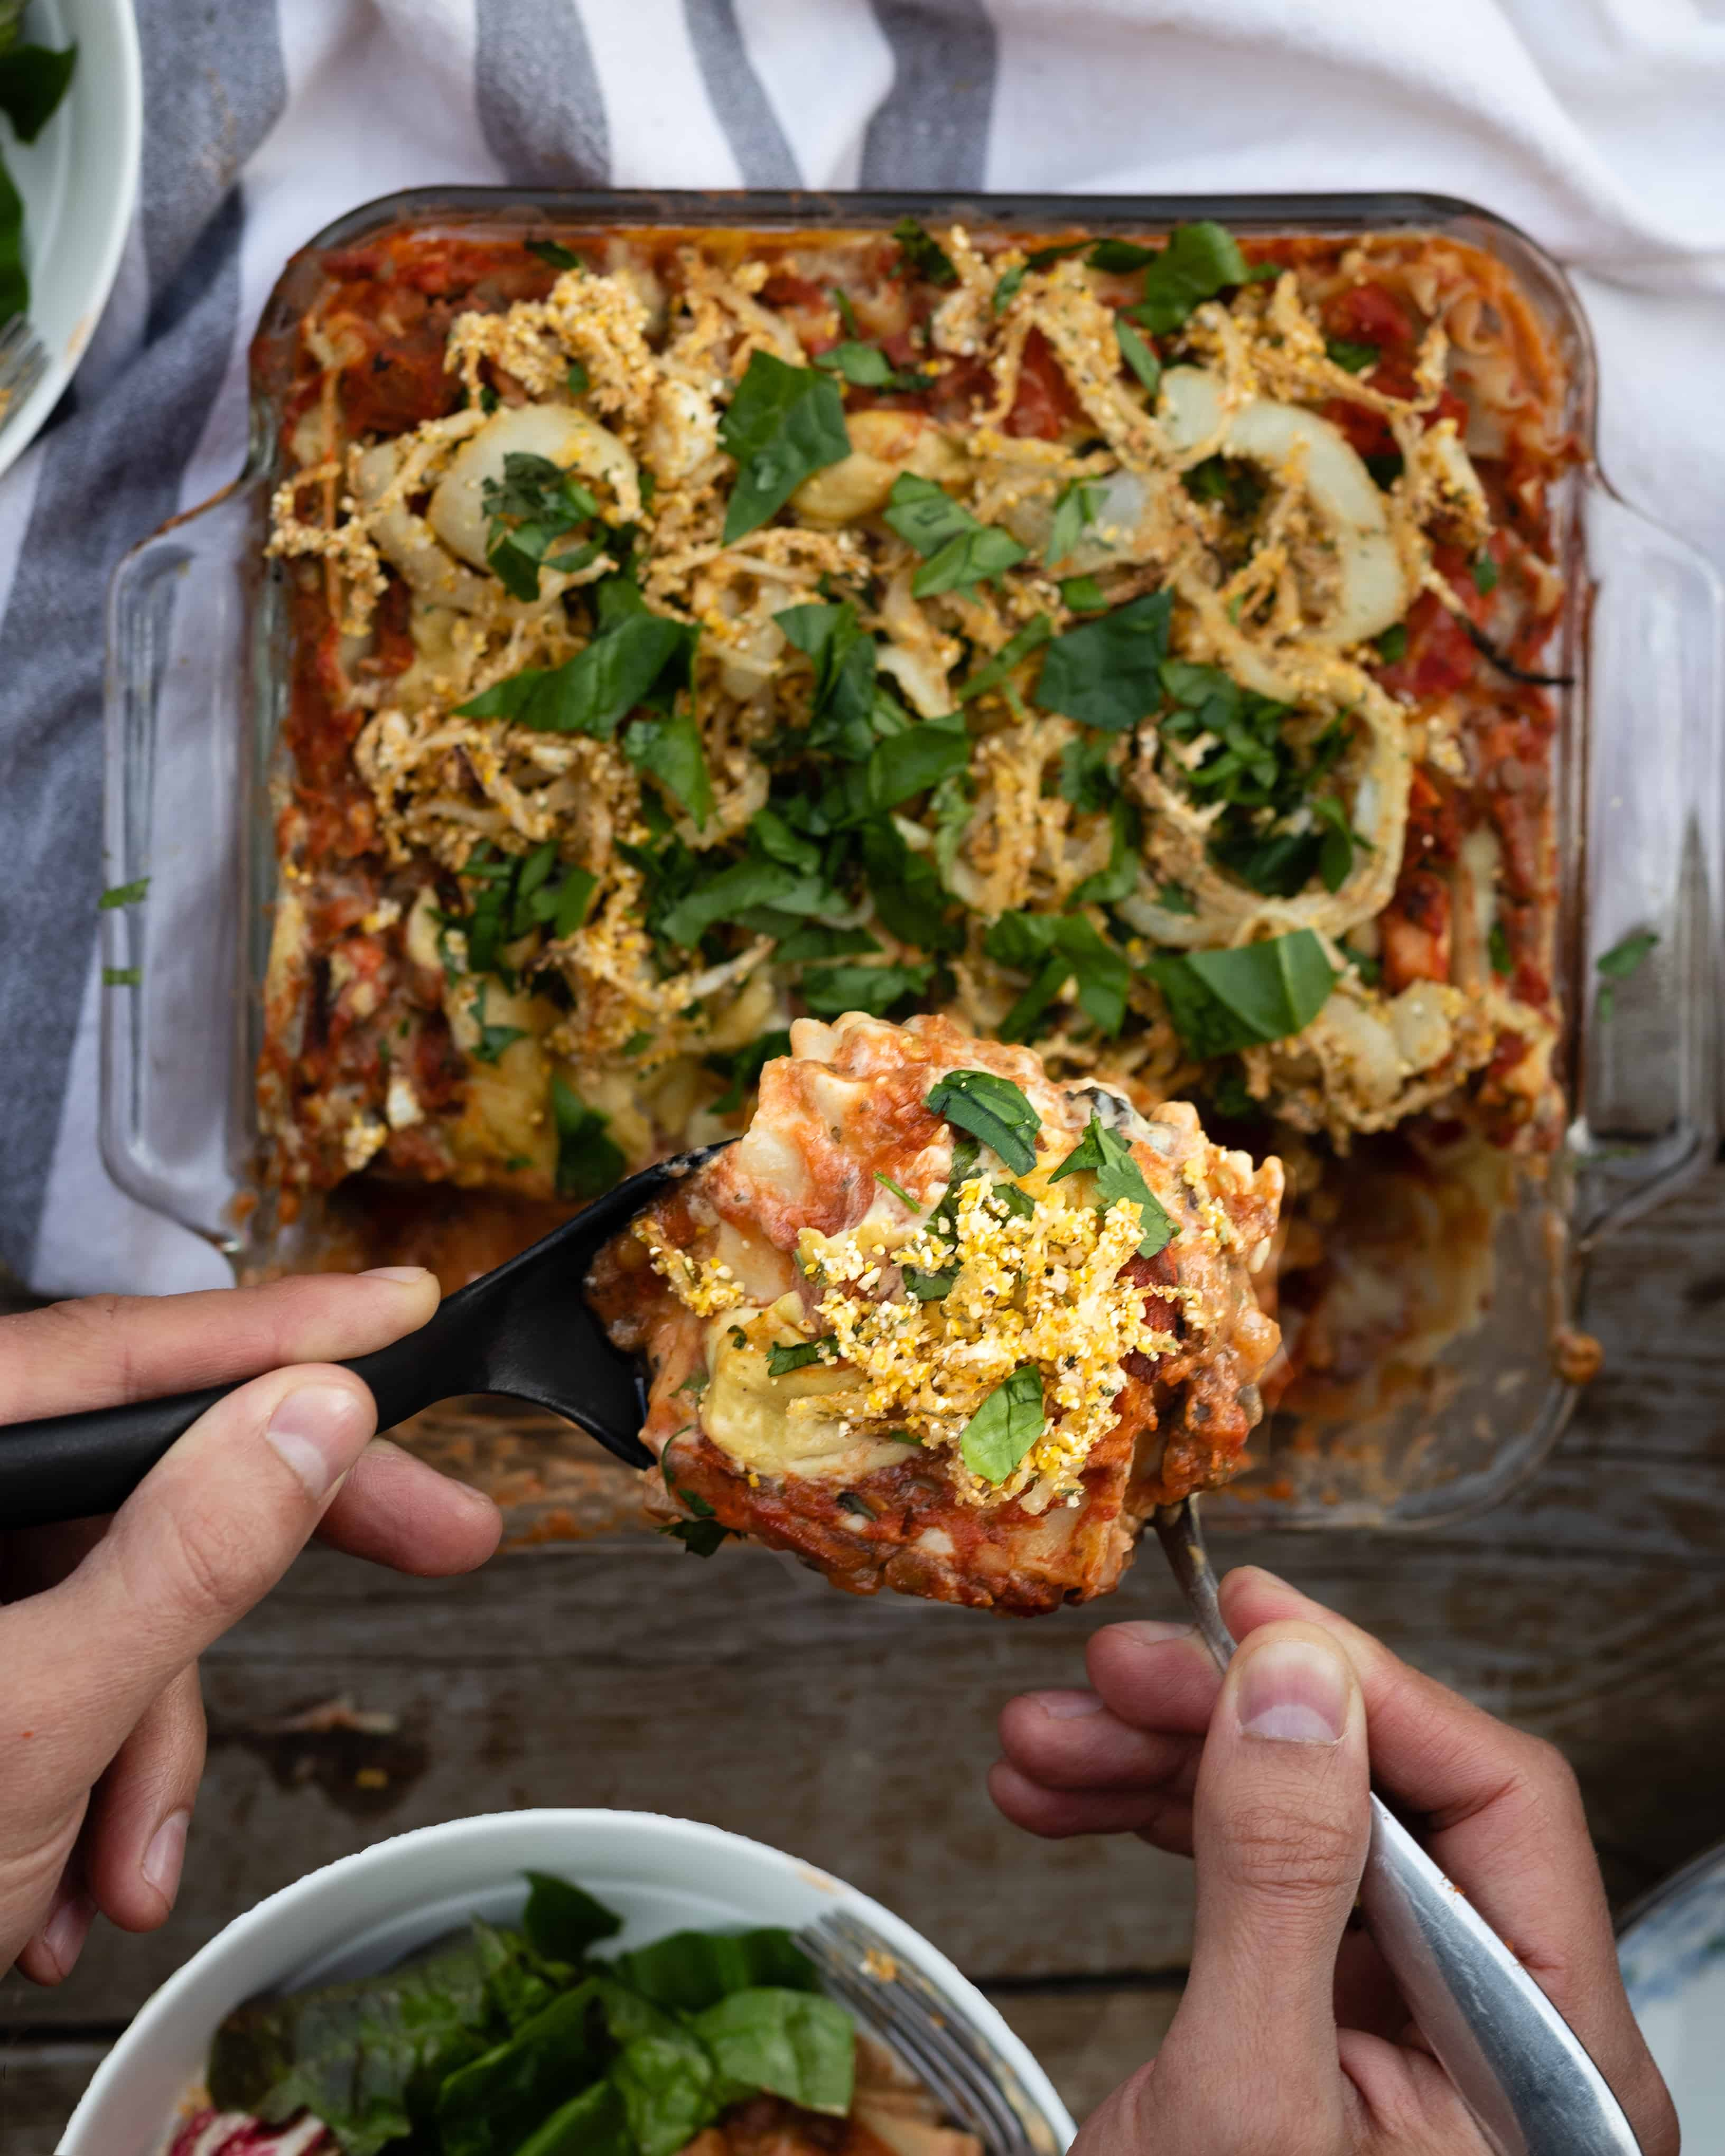 Birds eye view of vegan gluten free lasagna being served from a glass dish